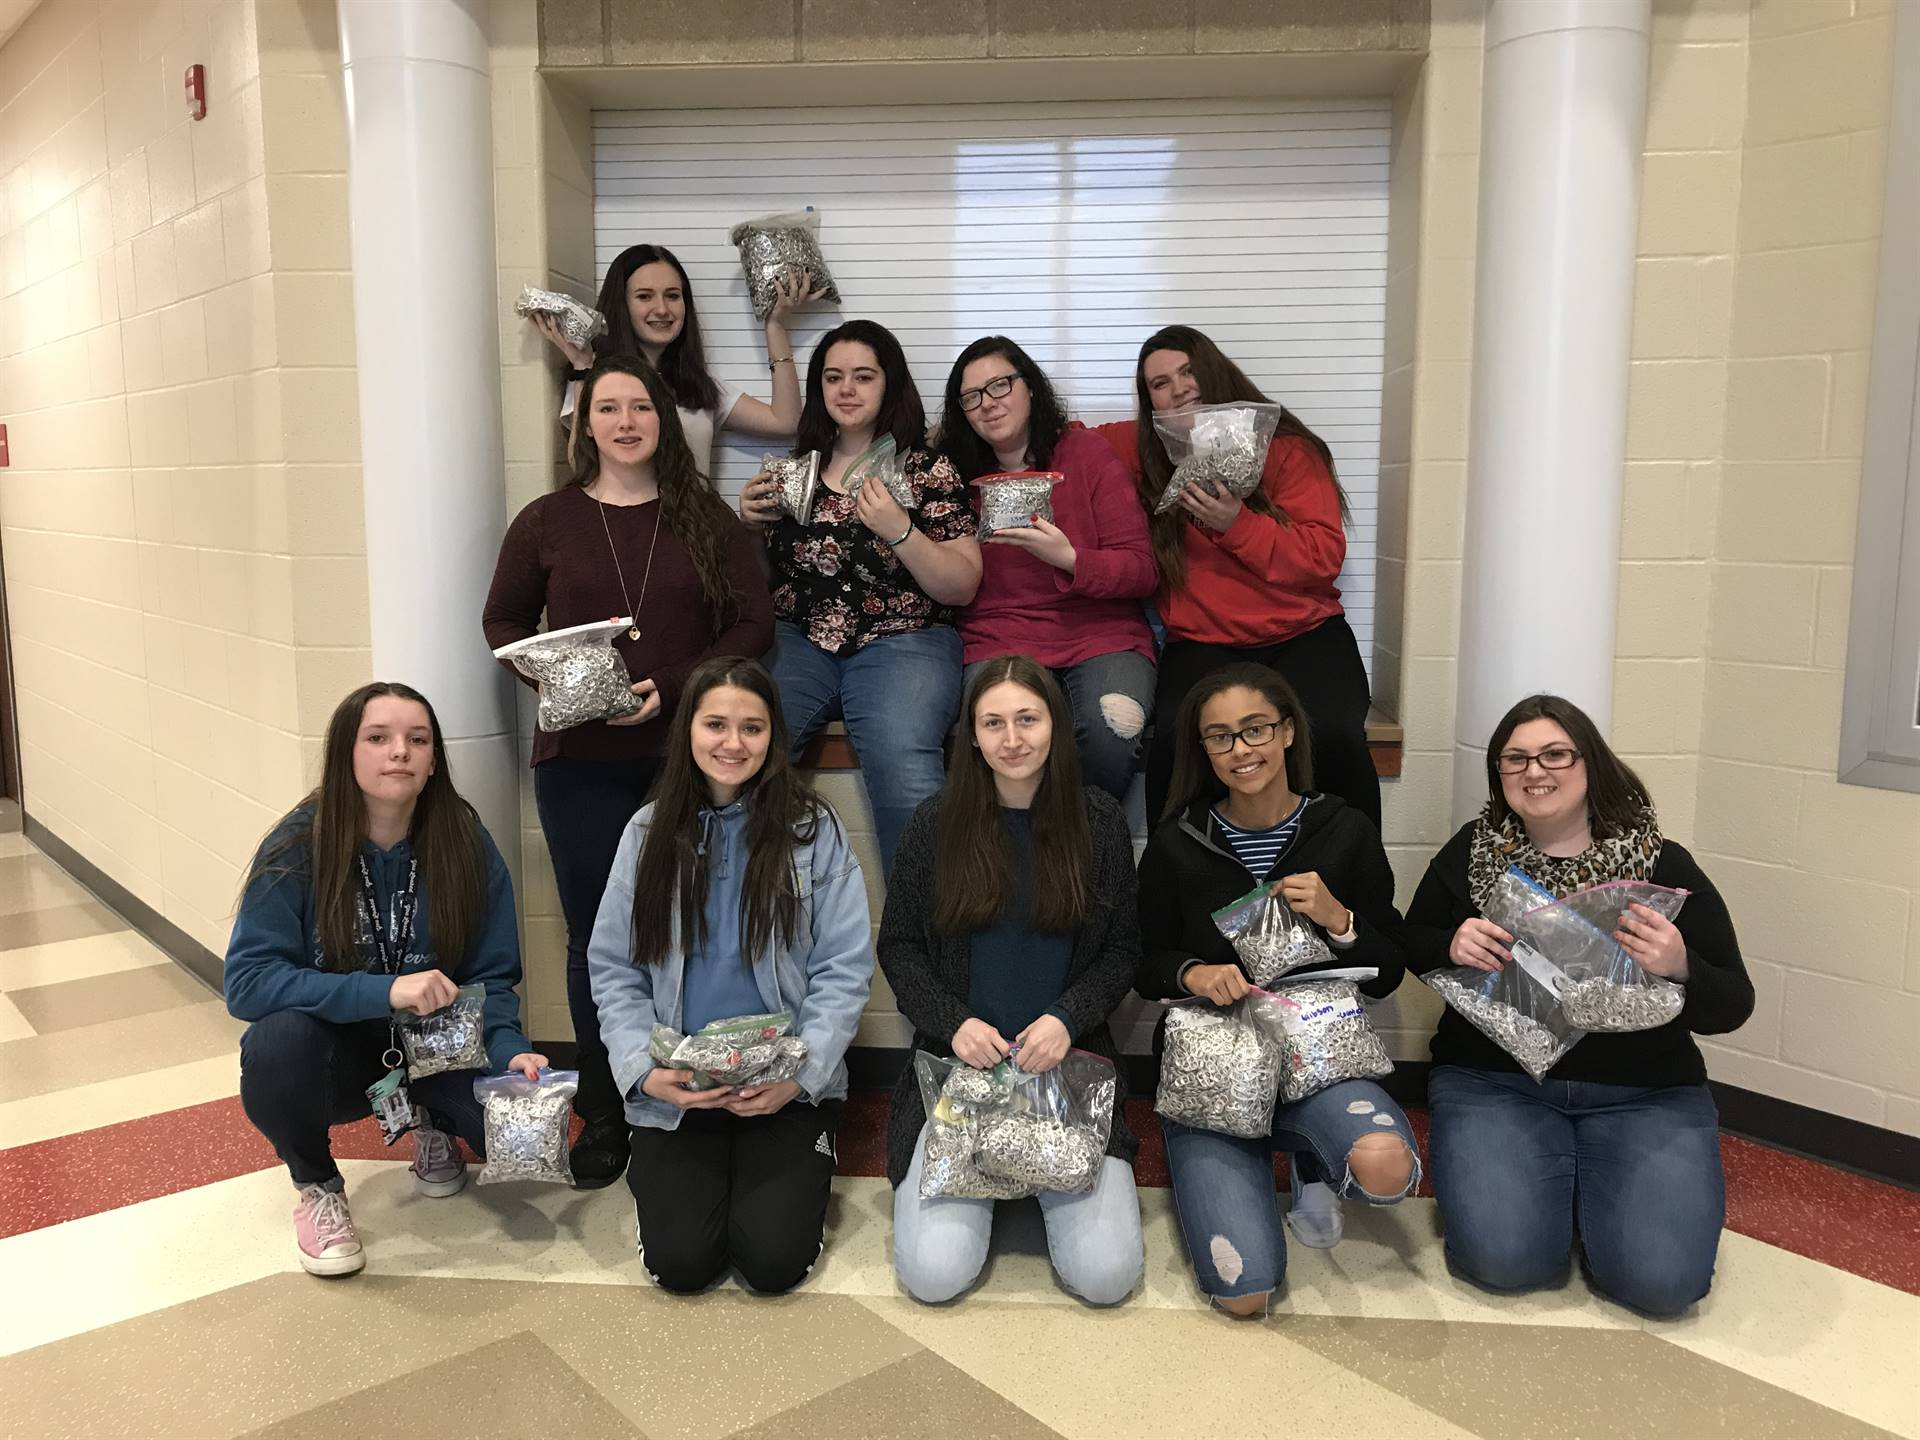 FCCLA collected 57,728 pop tabs to benefit The Ronald McDonald House.